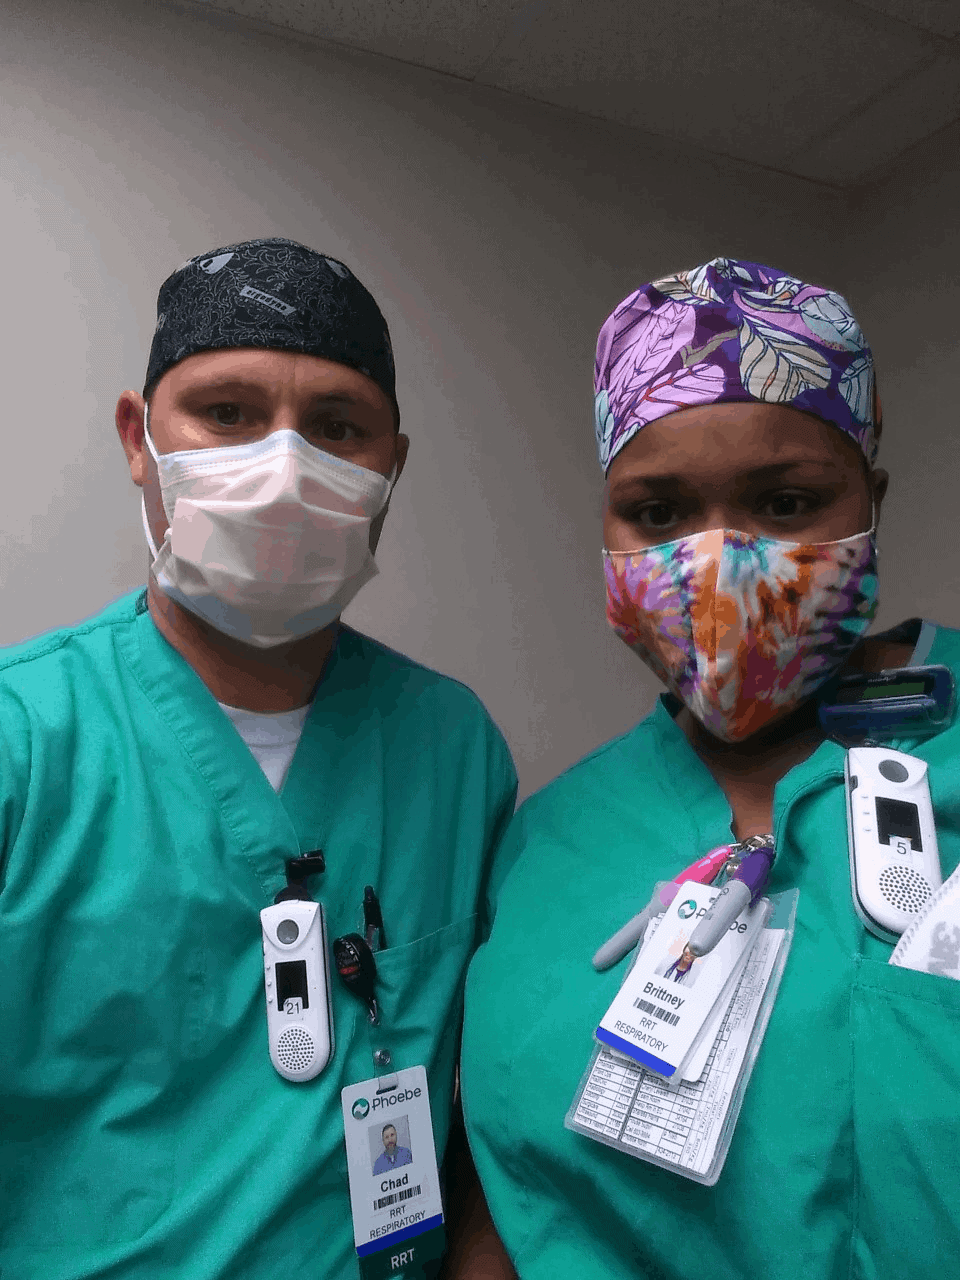 OFTC Respiratory graduates, Chad Keown (L) and Brittney Bryant (R), have been working on the frontlines of the COVID-19 pandemic in Albany, Ga.